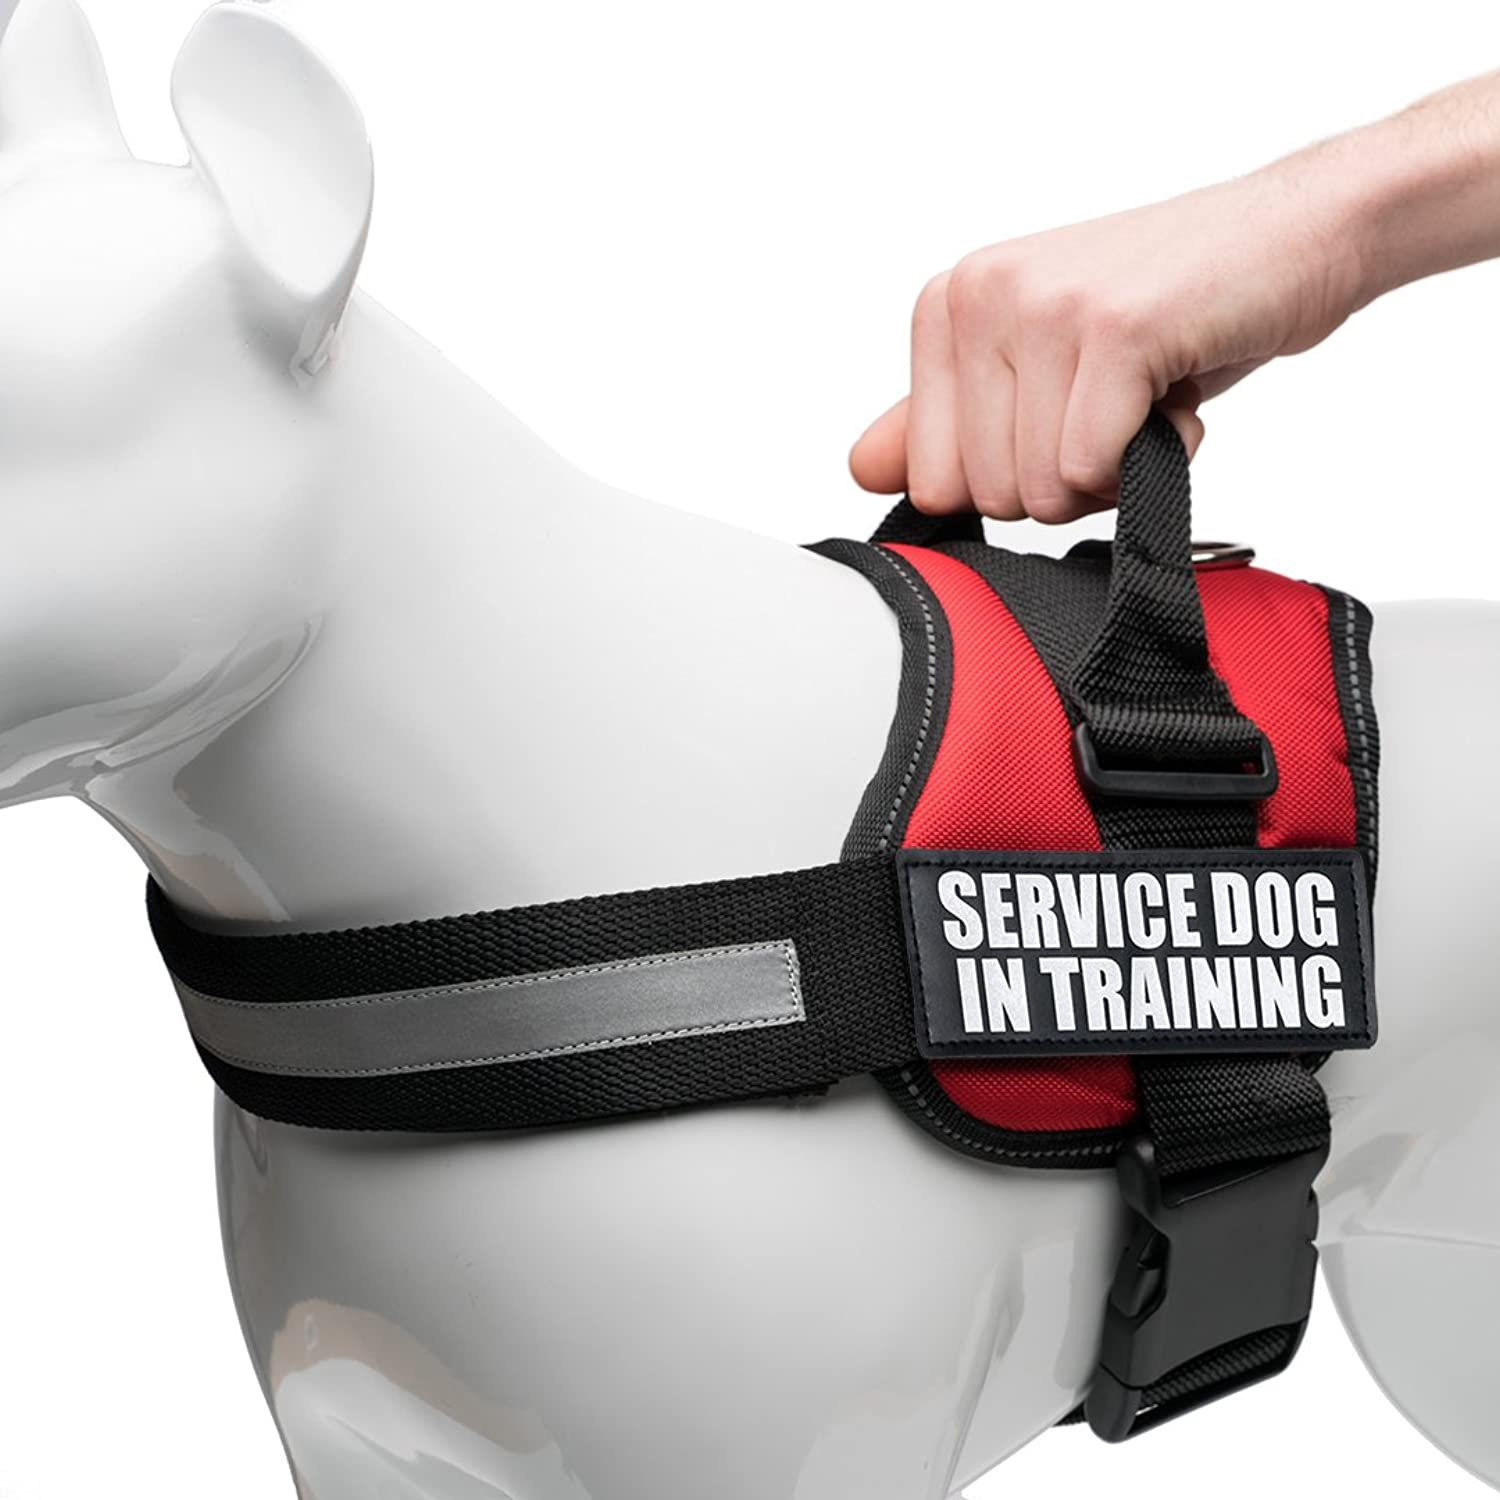 Industrial Puppy Service Dog In Training Vest With Hook and Loop Straps and Handle   Harnesses In Sizes From XXS to XXL   Service Dog Vest Harness Features Reflective Patch and Comfortable Mesh Design